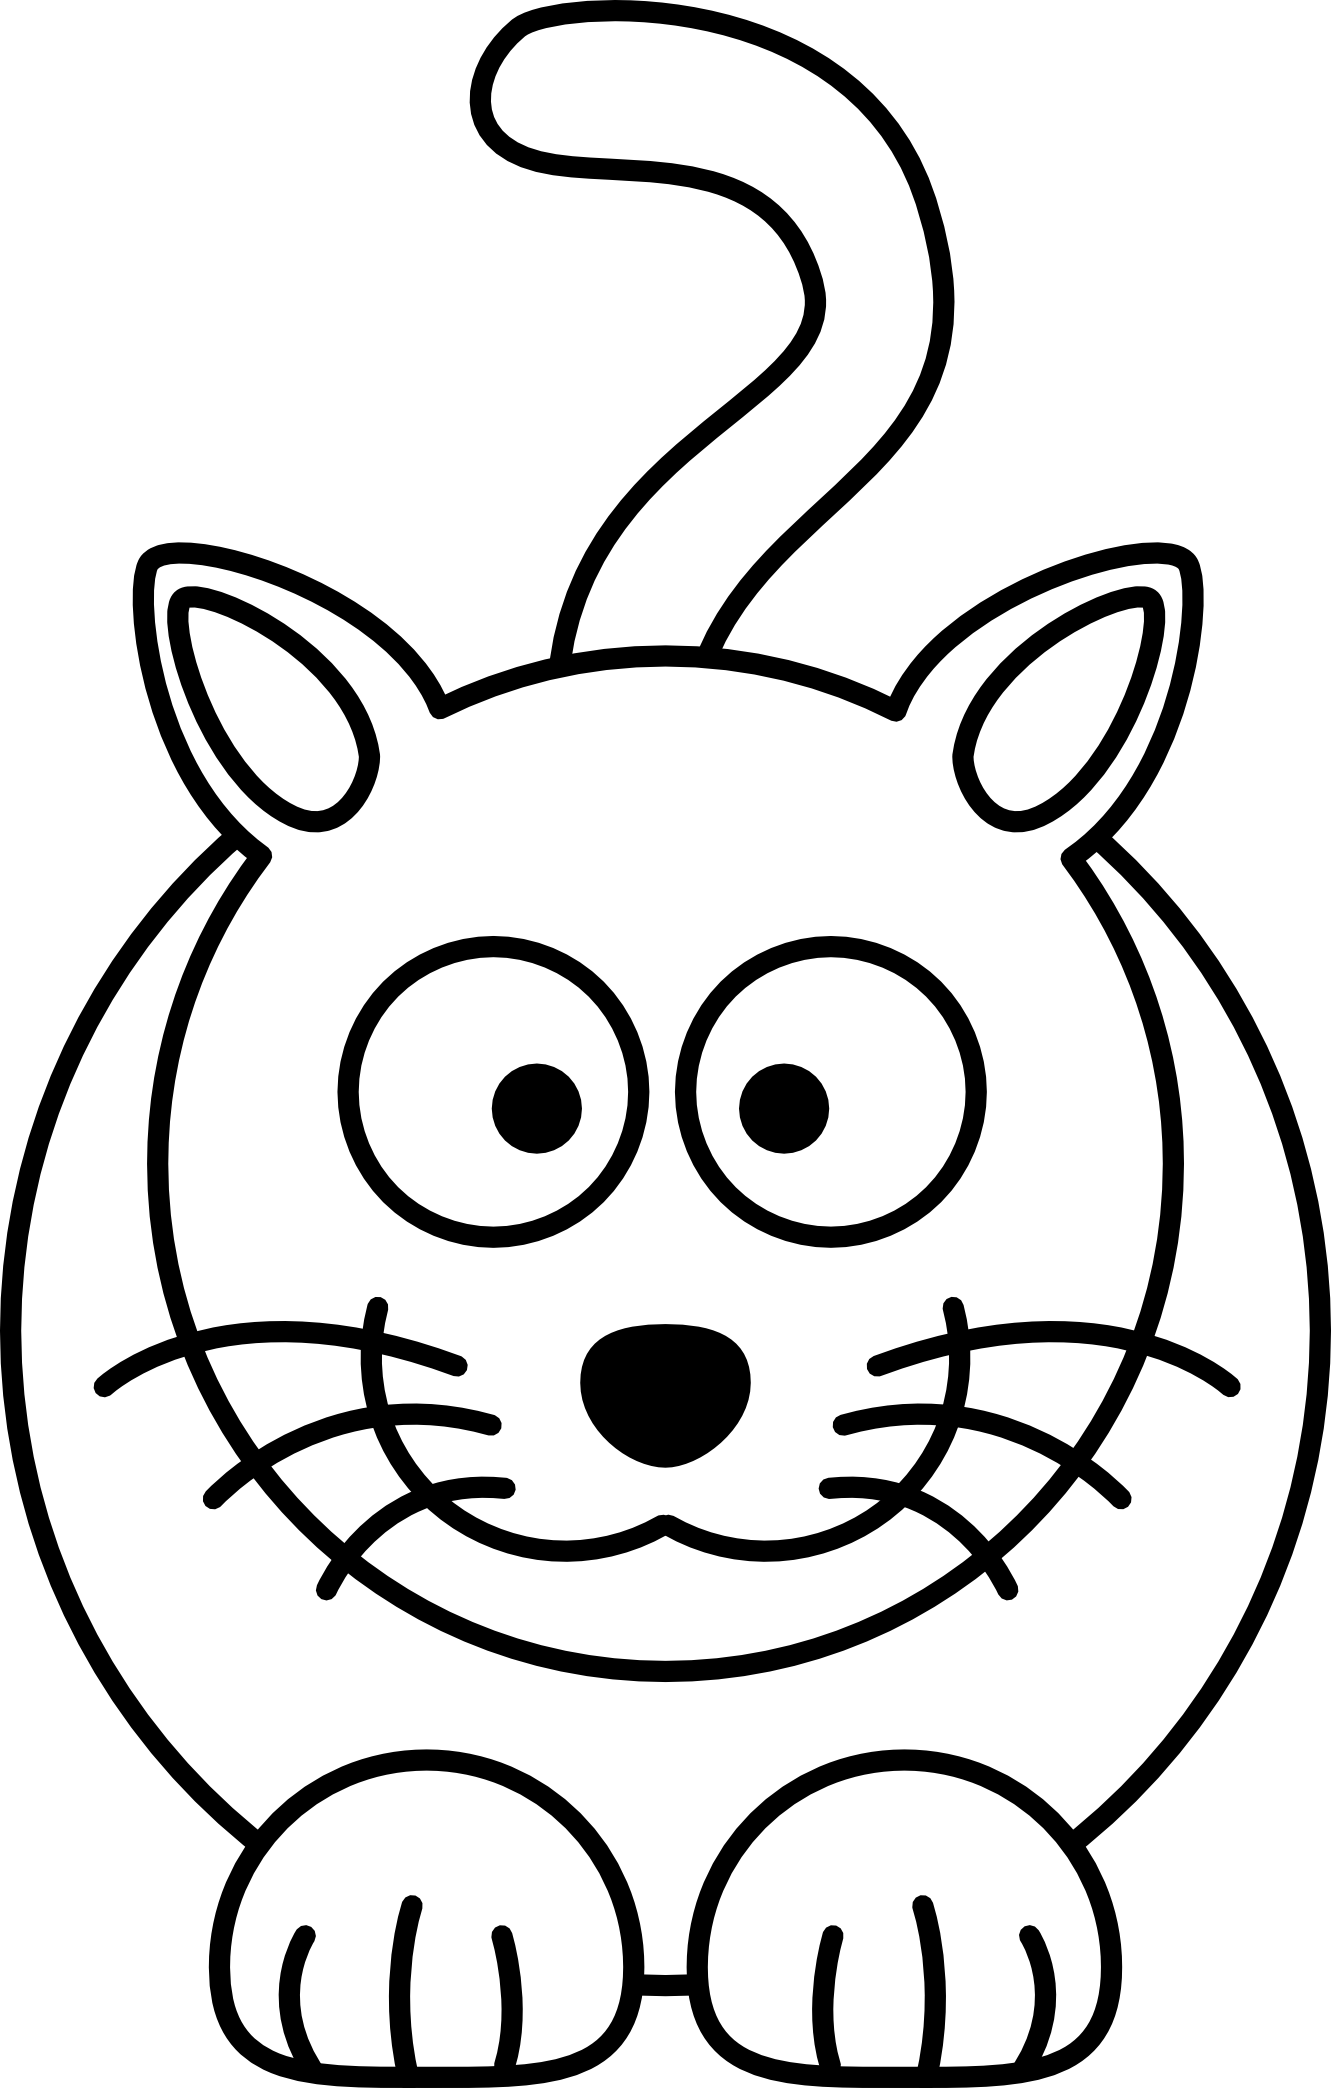 Cats clipart simple. Line drawing of cat